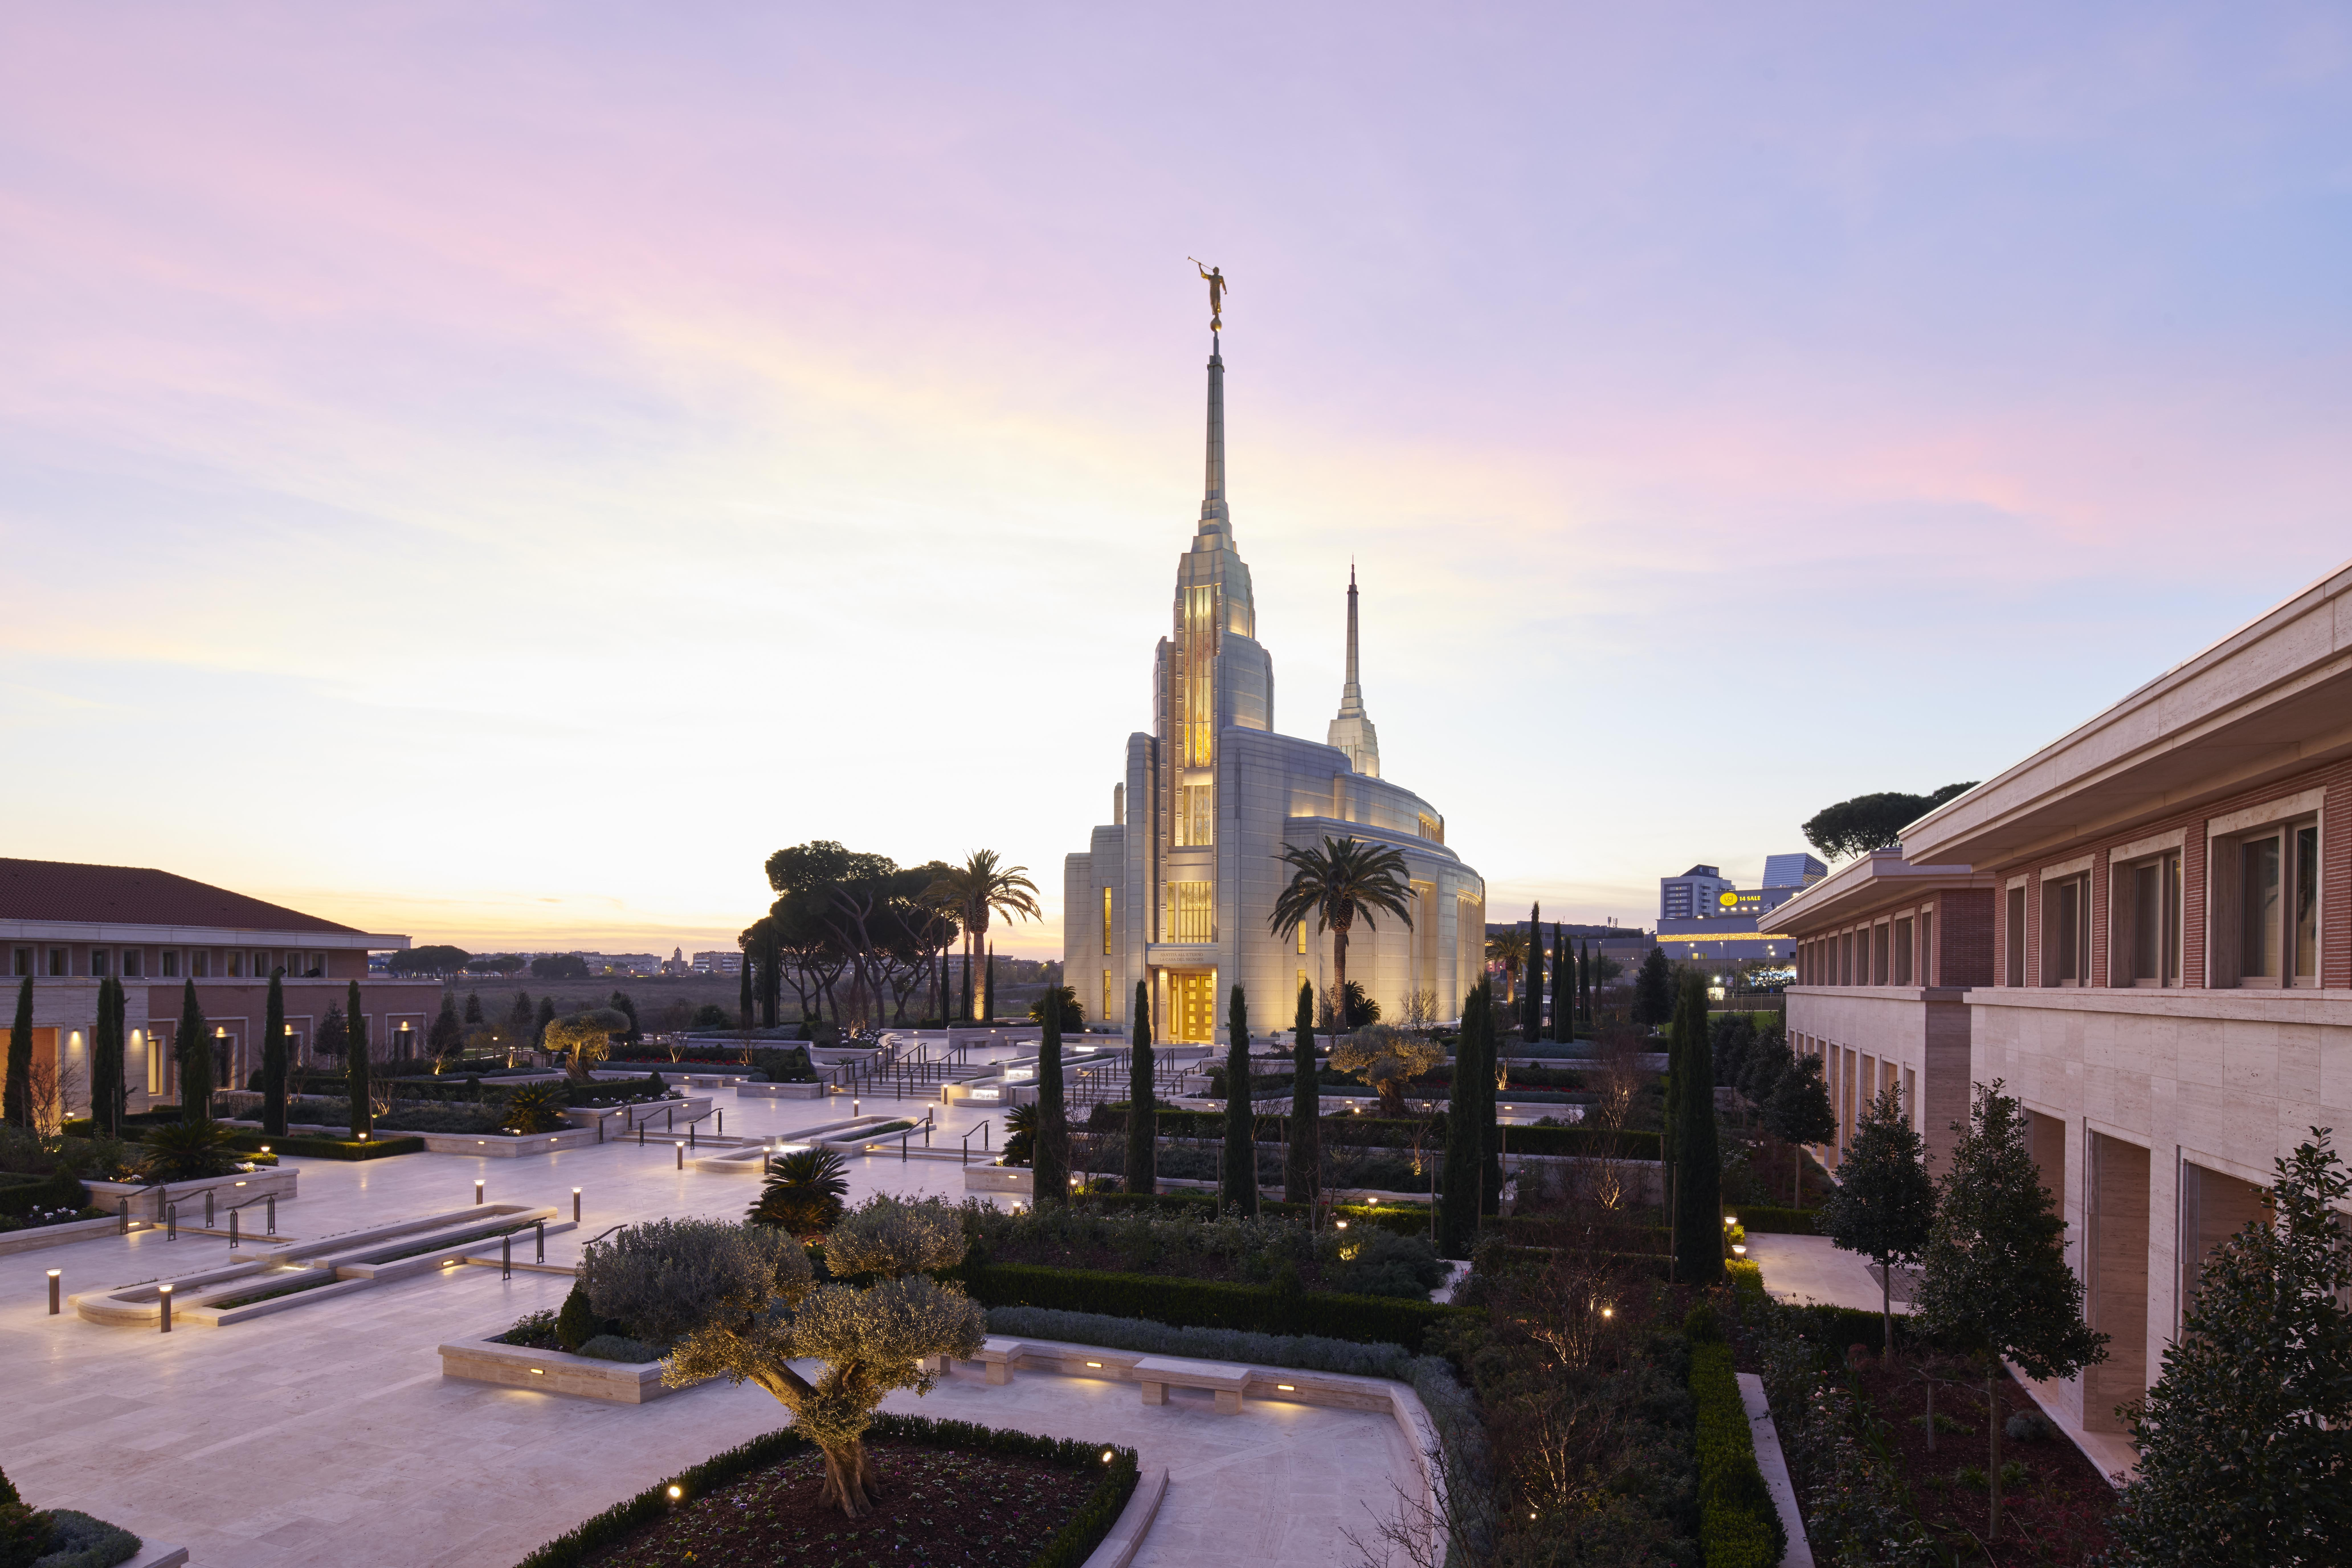 The Rome Italy Temple at dusk.